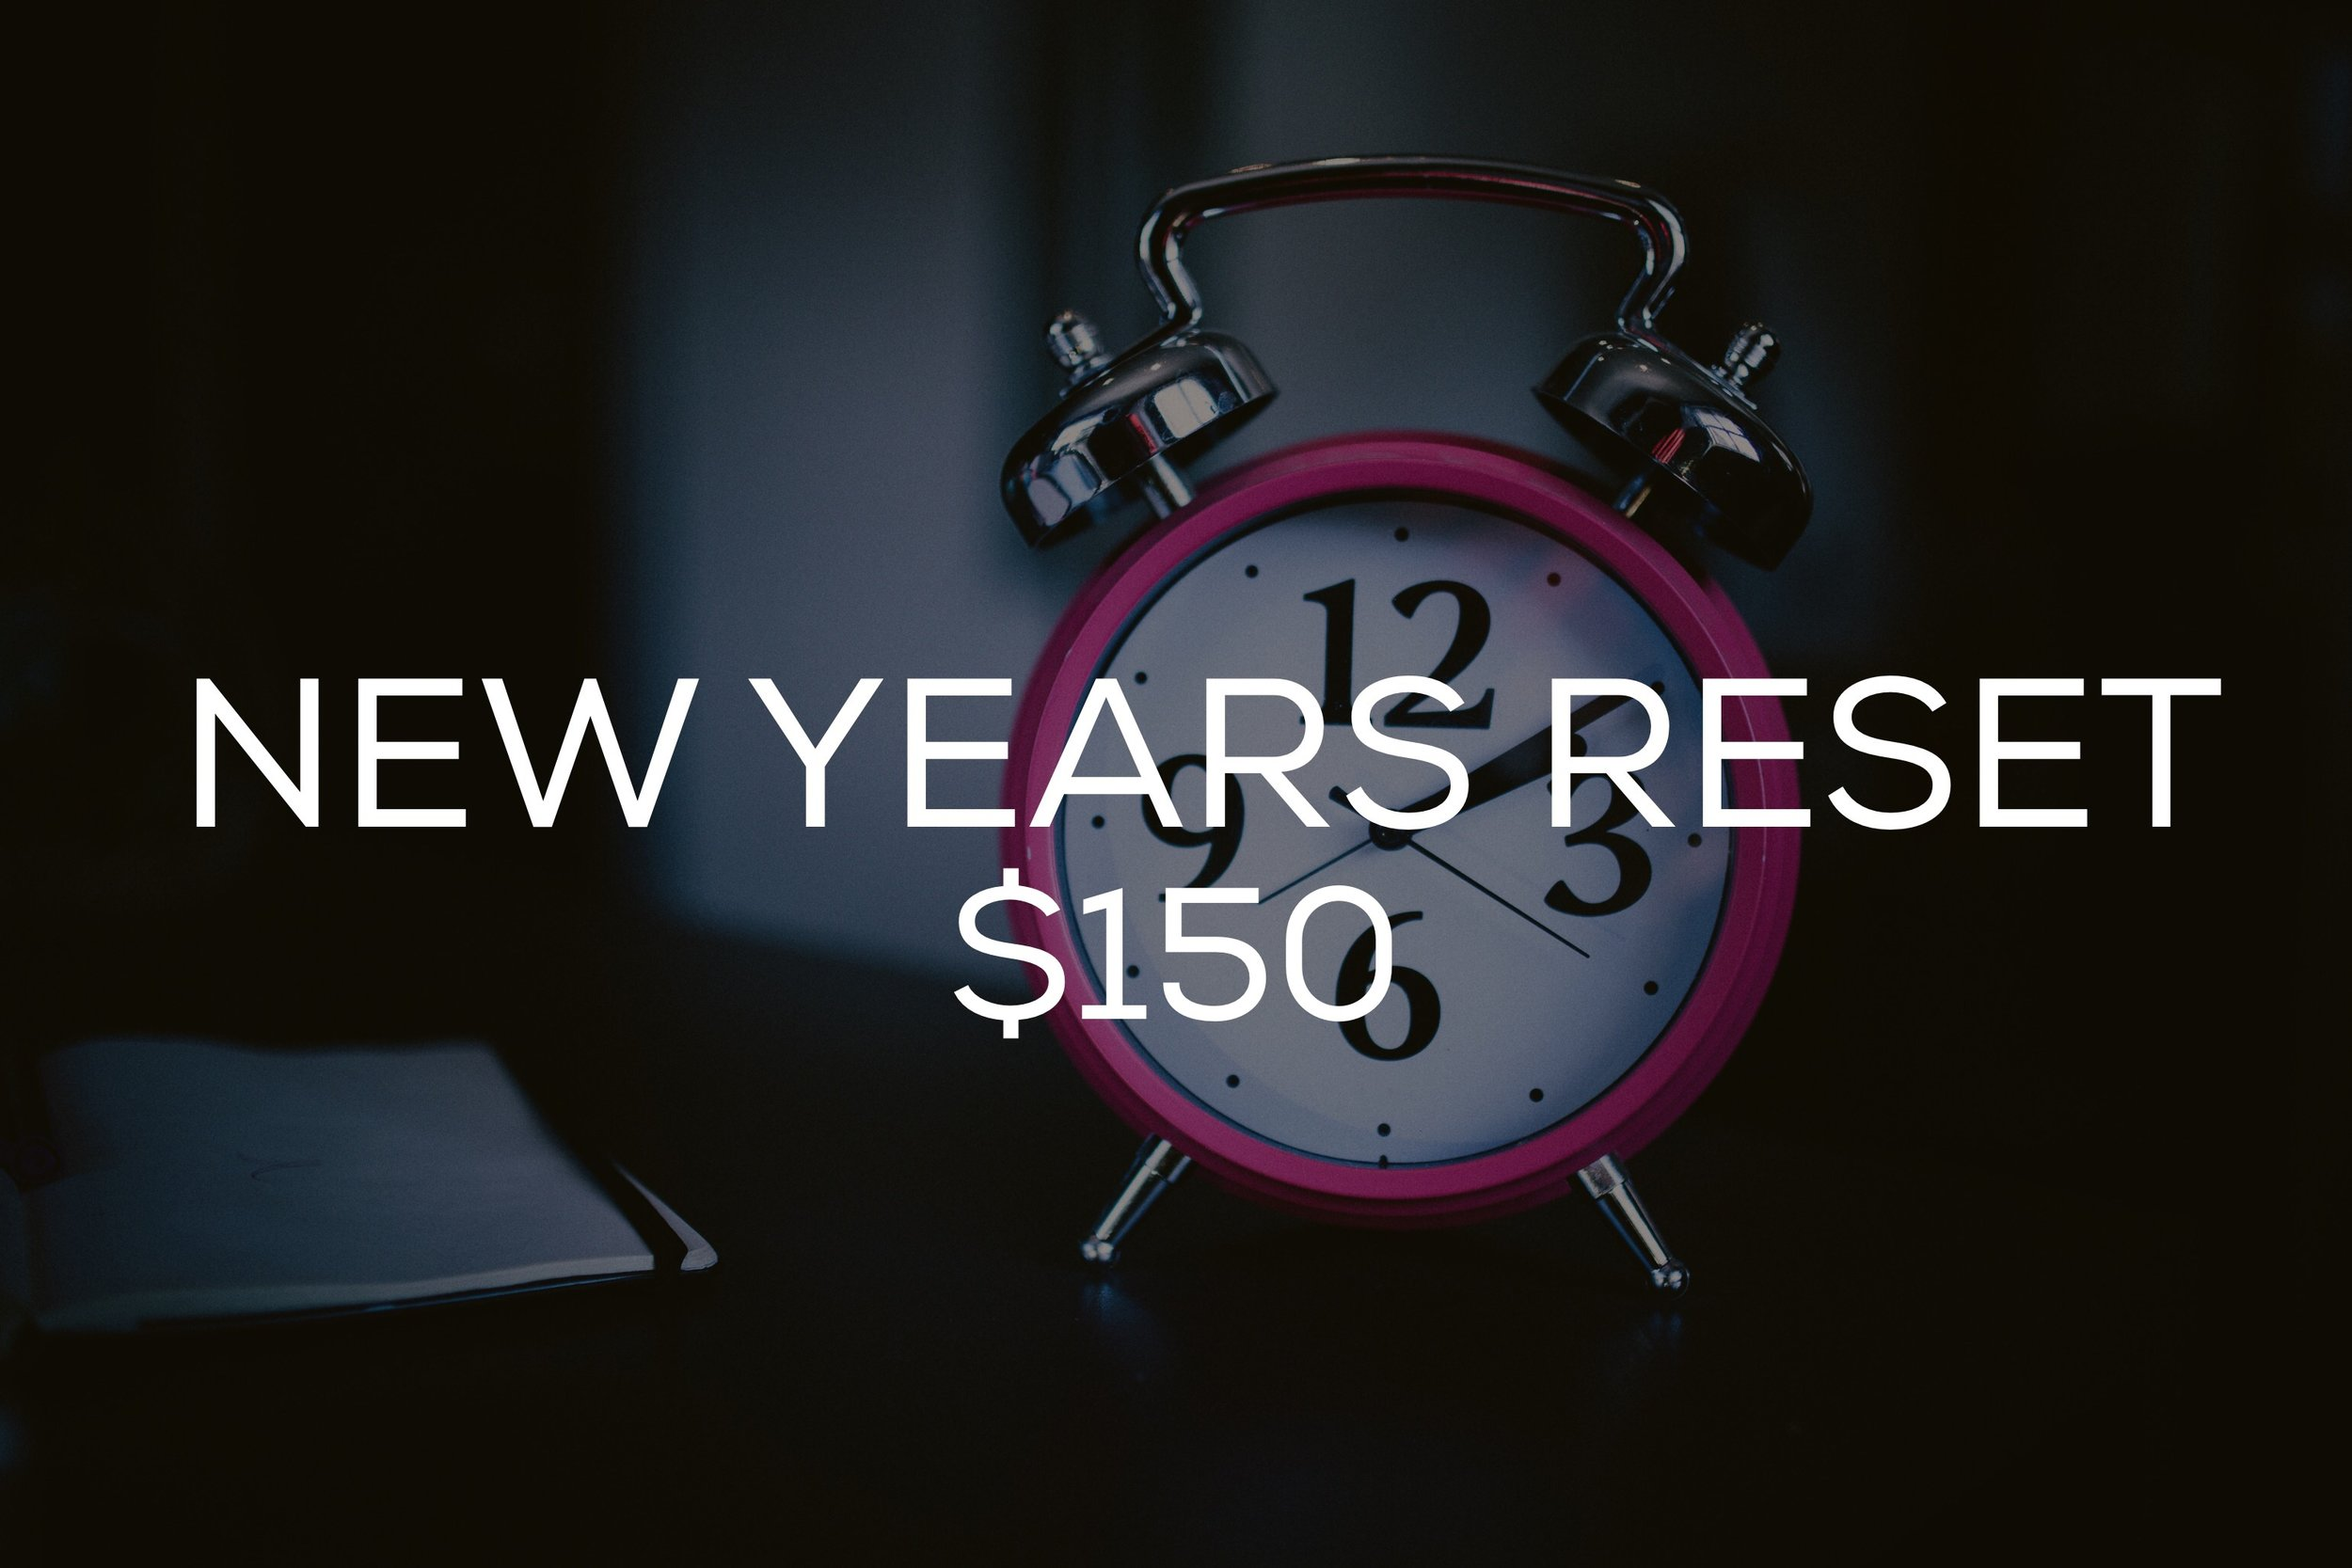 Are you ready to reset your life in 2017?! This package will include three 30 minute sessions on how to push reset in life by learning how to make goals that you can actually achieve!